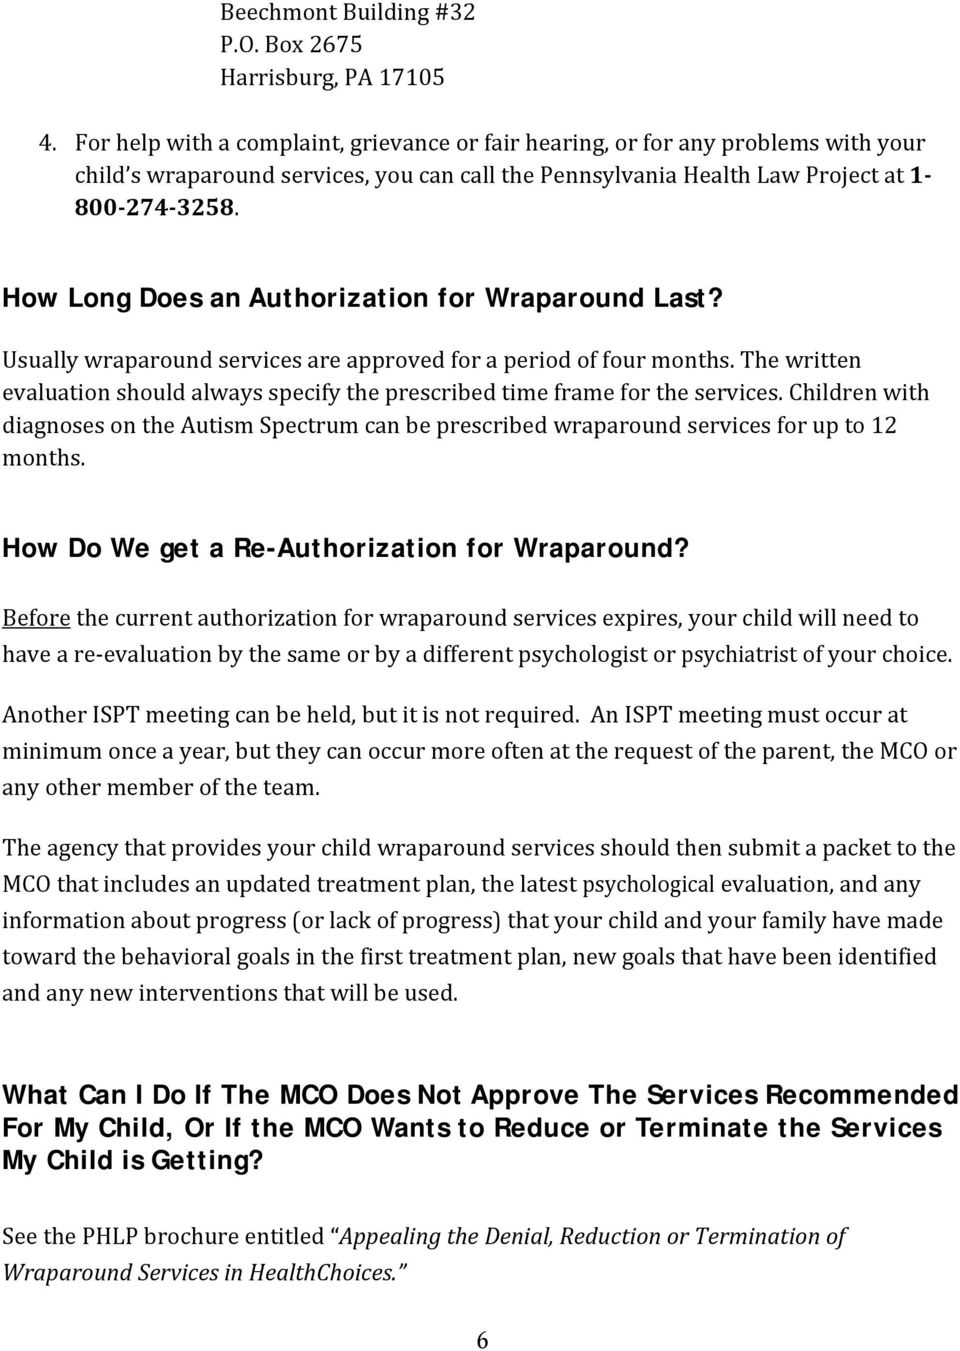 How Long Does an Authorization for Wraparound Last? Usually wraparound services are approved for a period of four months.